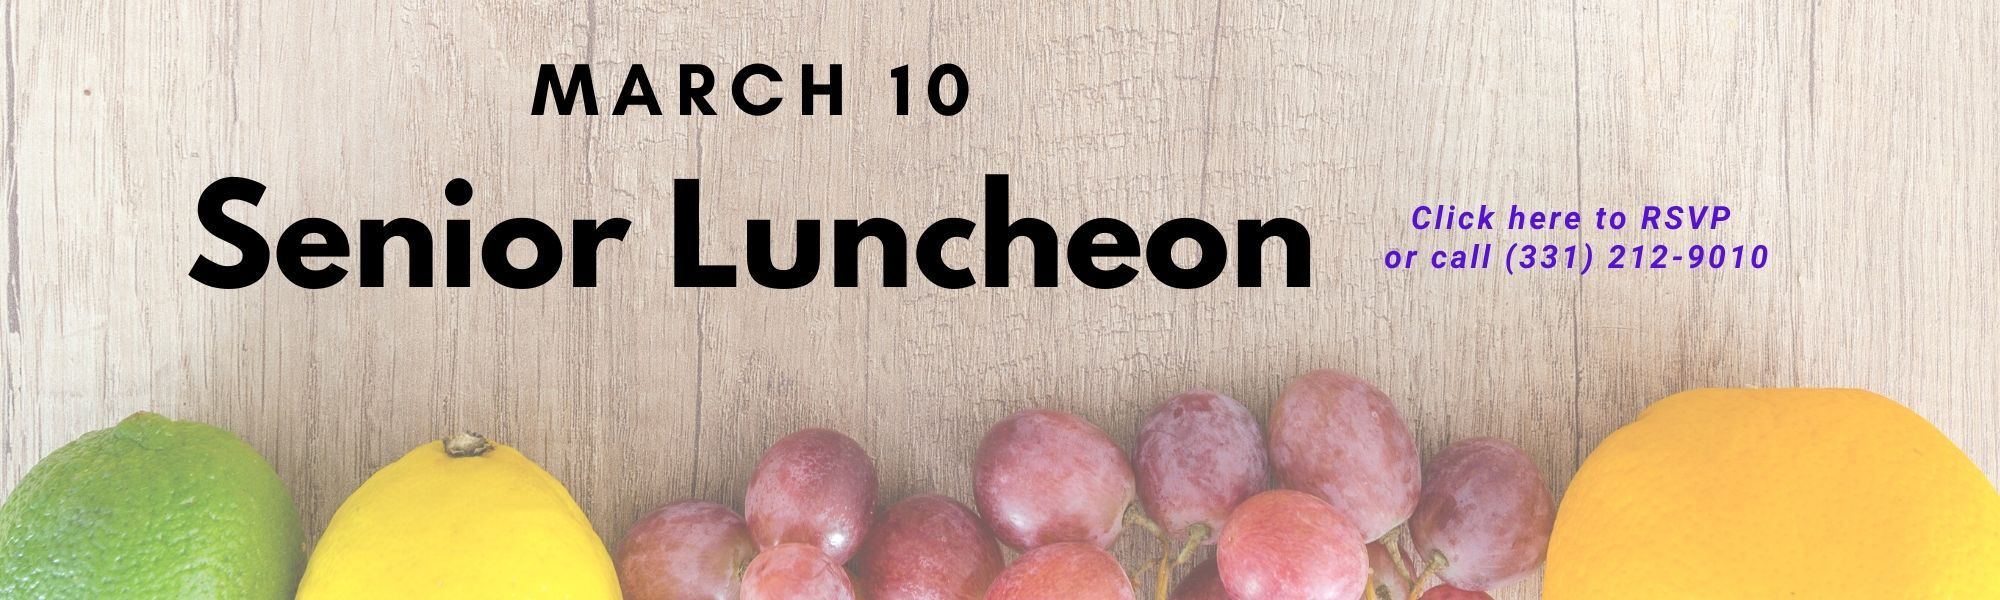 March_Lunch_2020